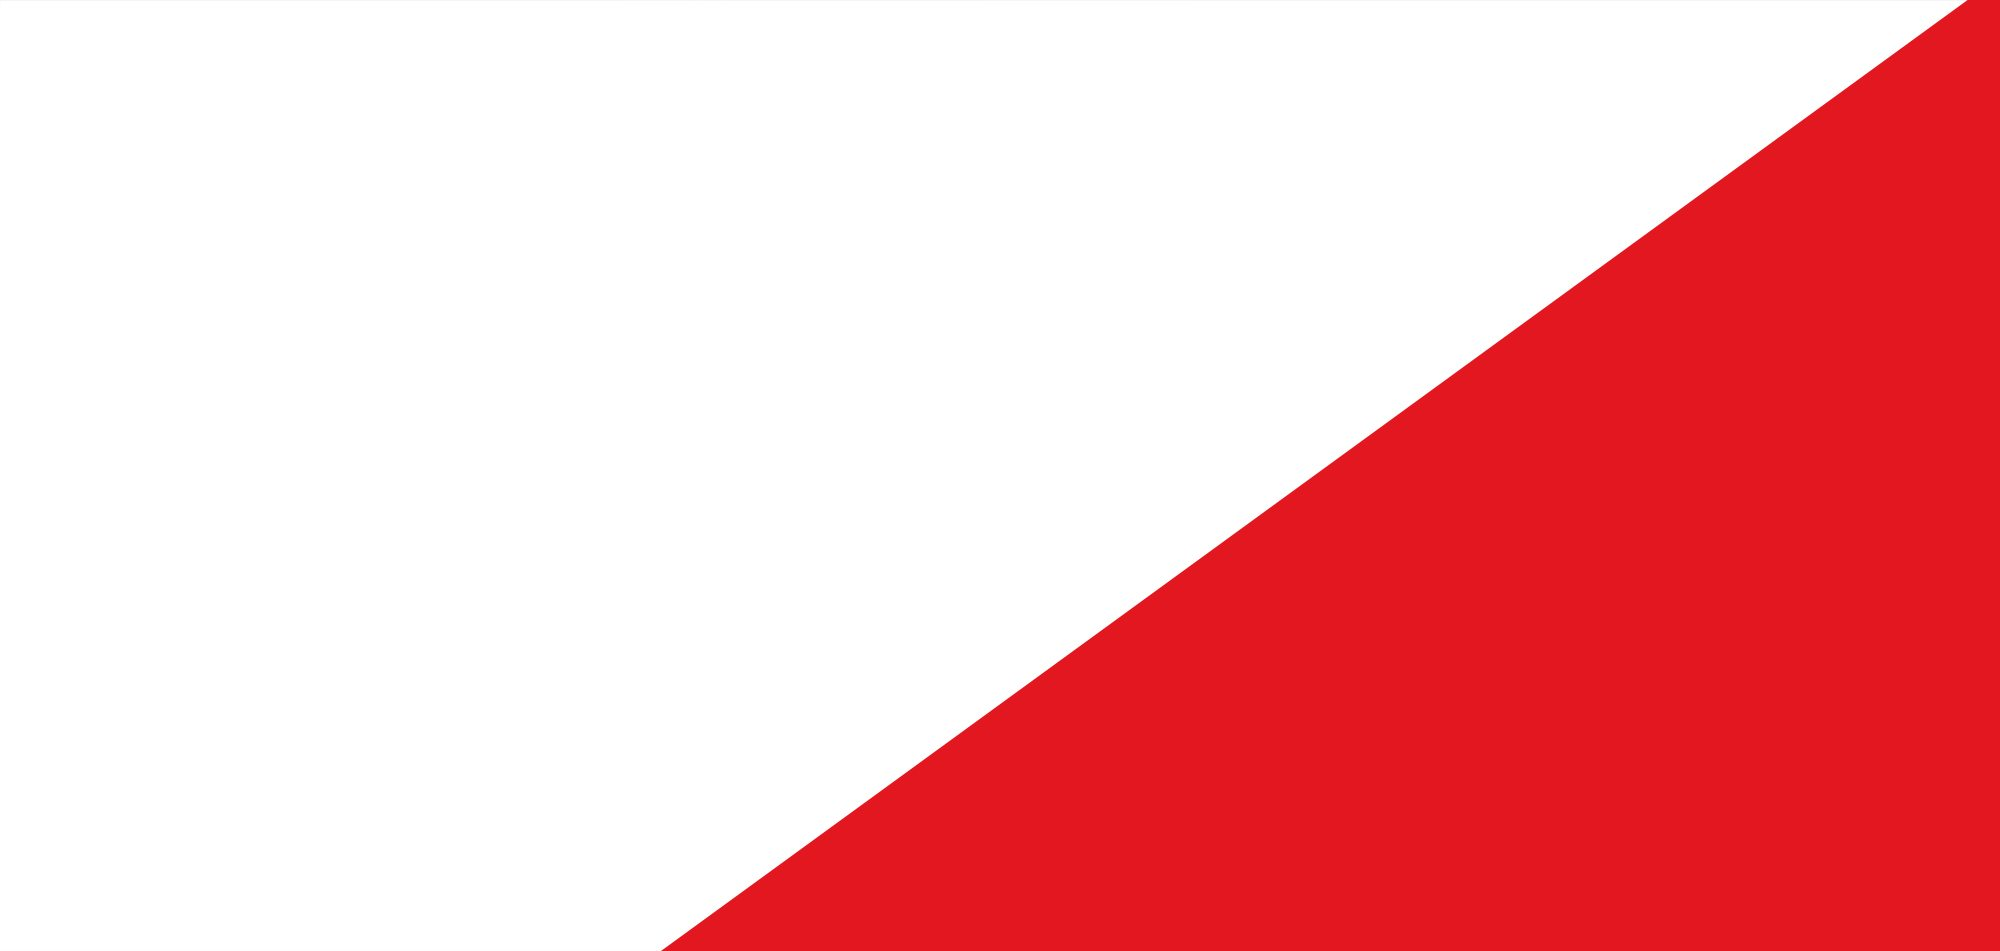 Background image: white and red colors split diagonally